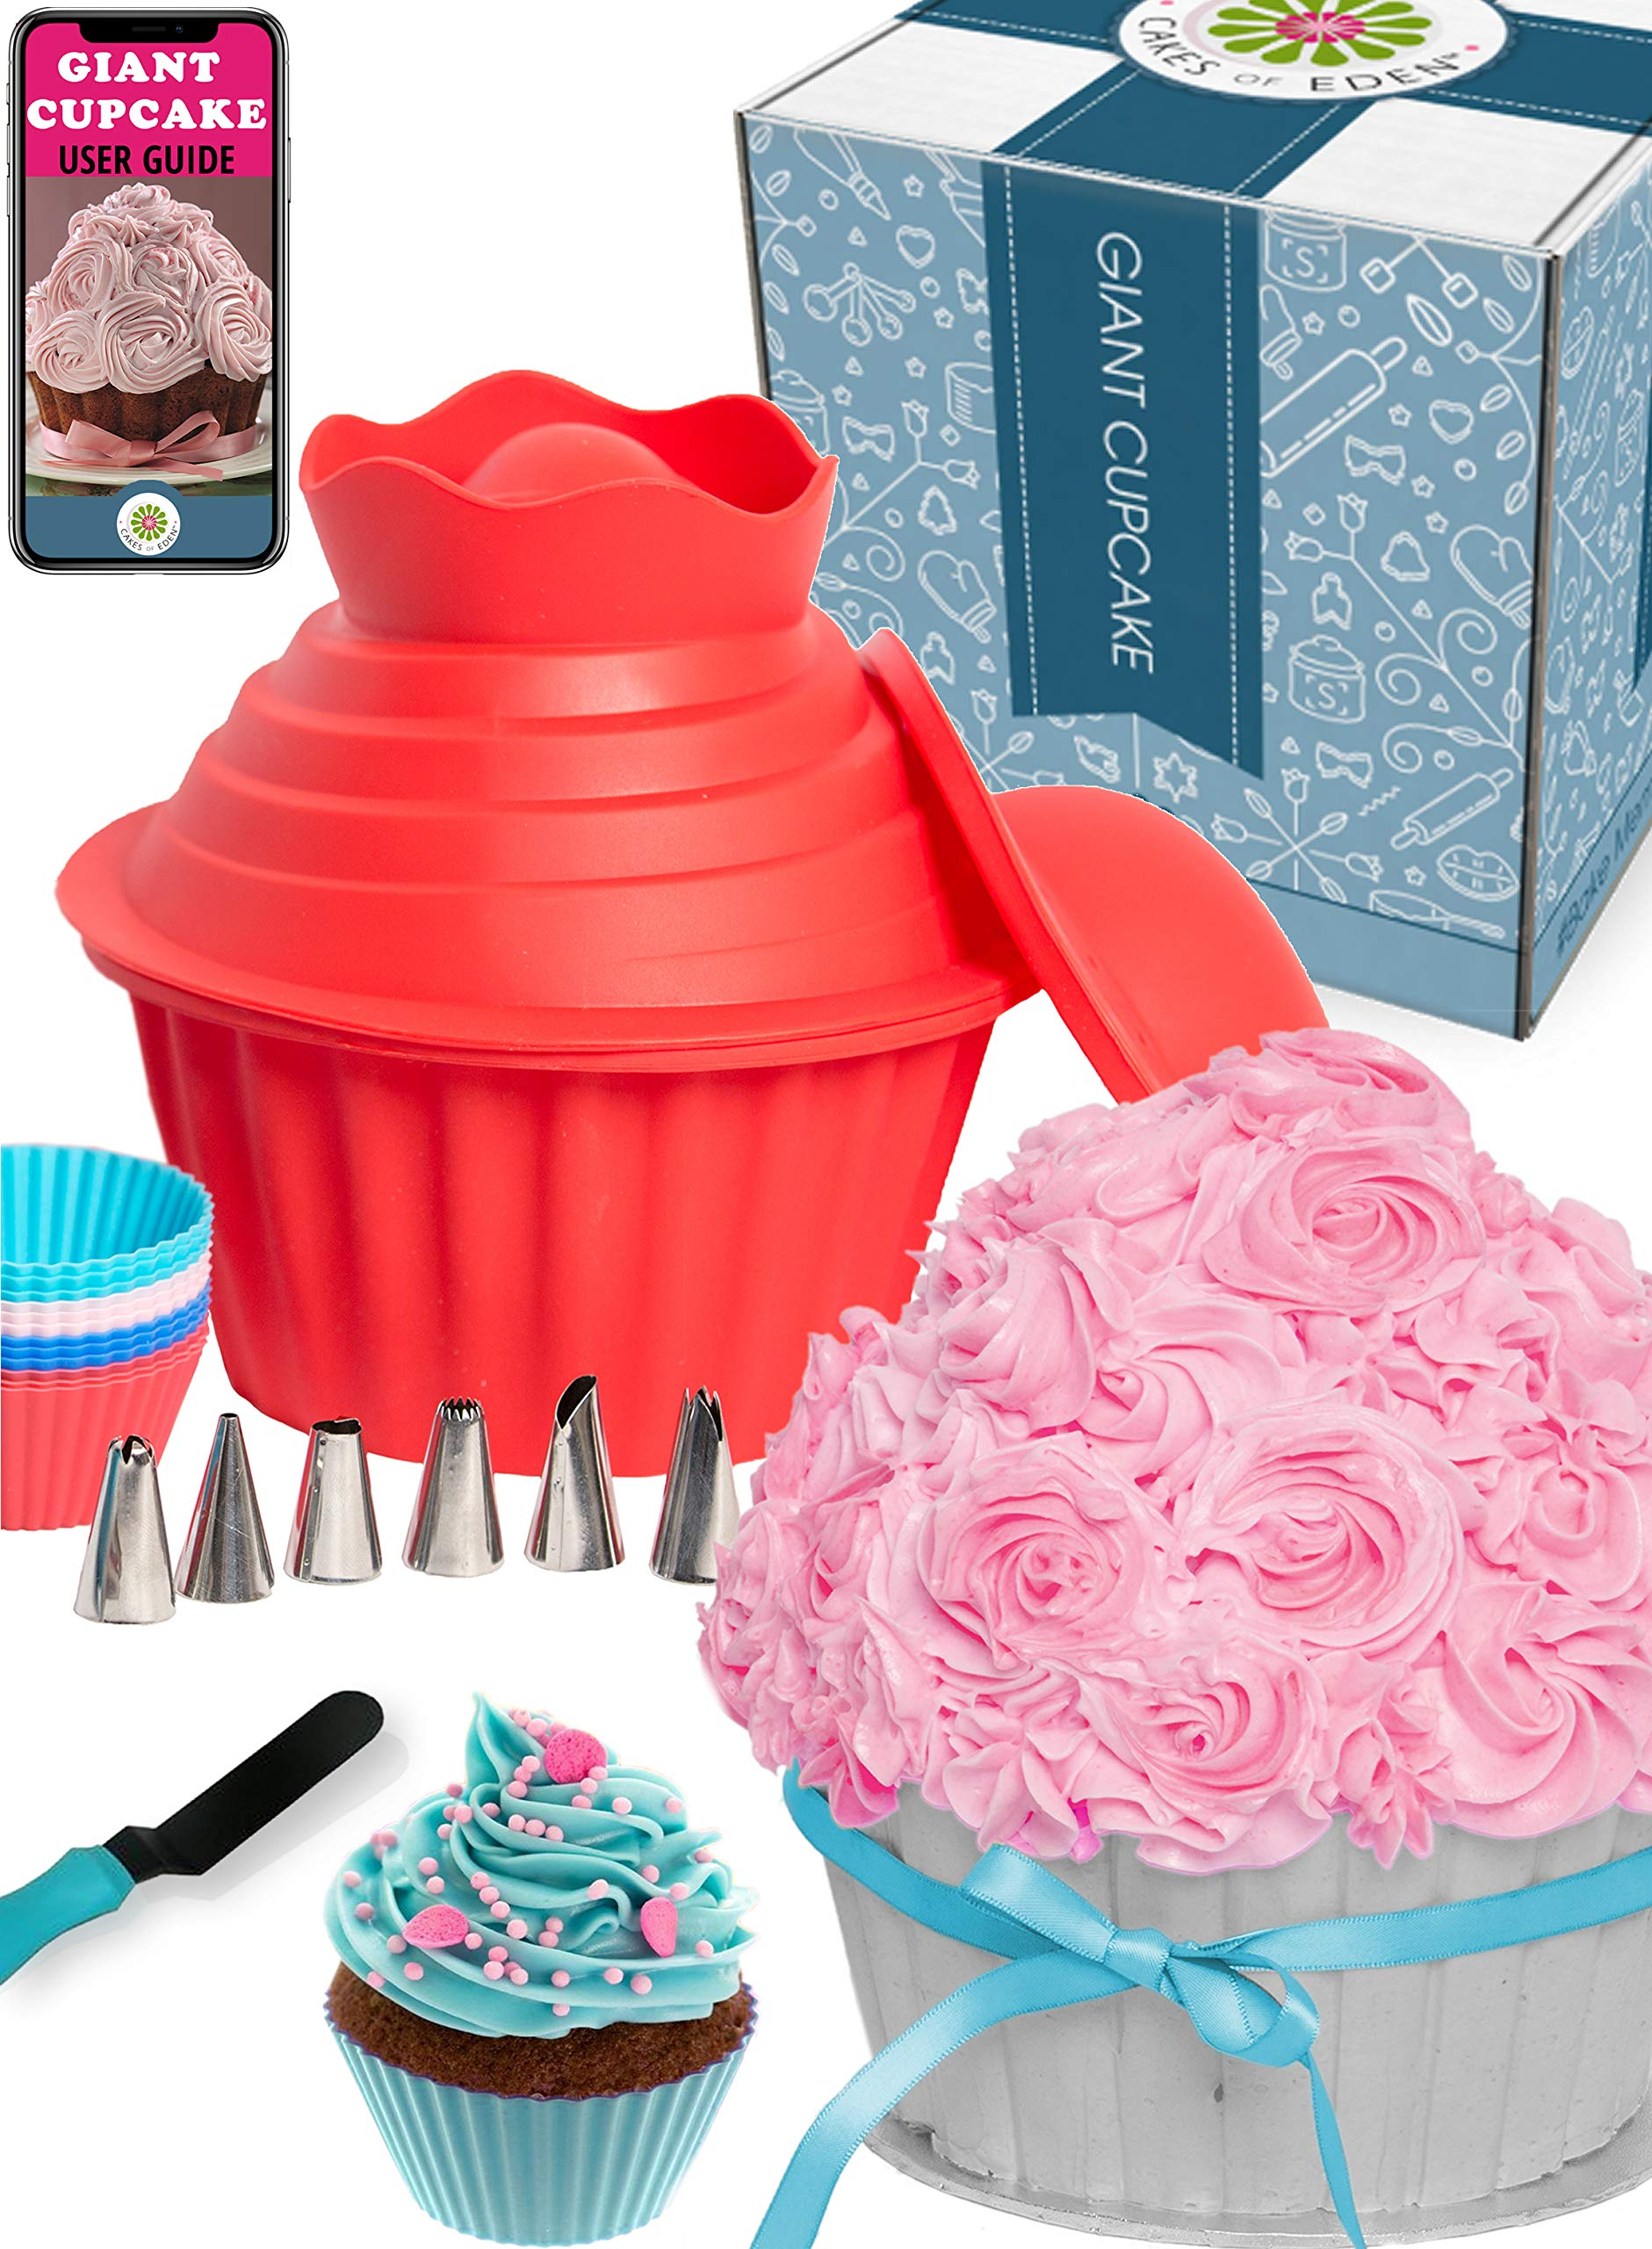 29pcs Giant Cupcake Pan Silicone Molds - Extra Huge Oversized Bakeware Cup Mold. Large Smash Cake Big Jumbo Muffin Baking Decorating Supplies Kit Accessories Frosting Icing Piping Bags Tips Cups by Cakes of Eden